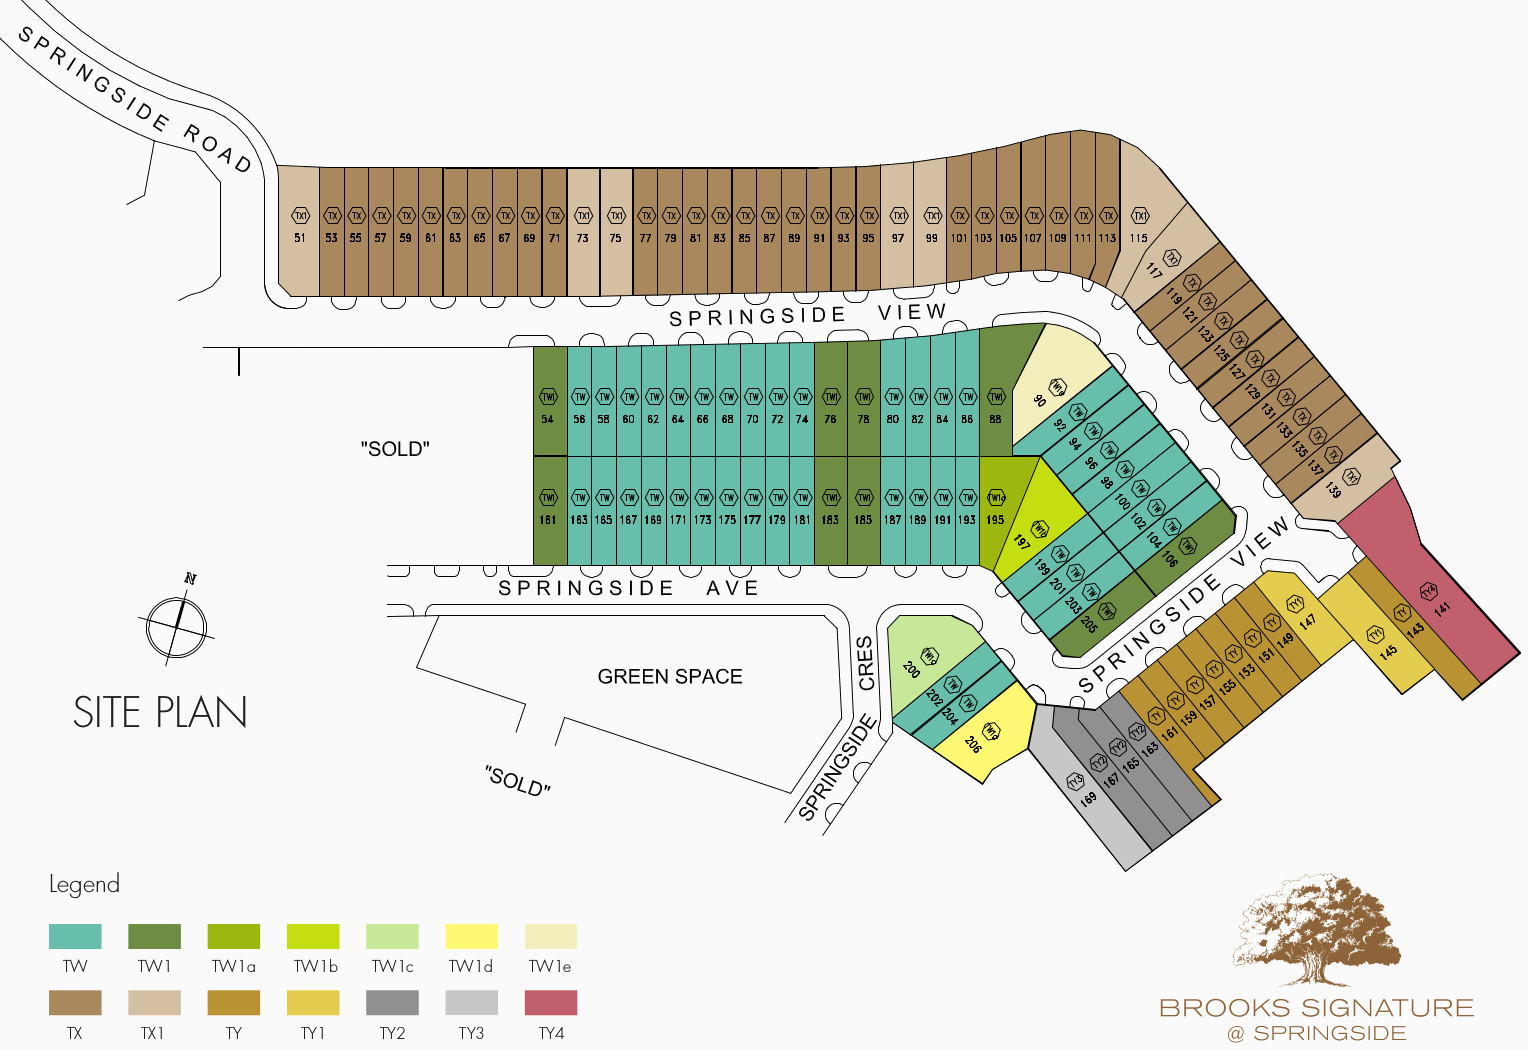 Brooks Signature Site Plan